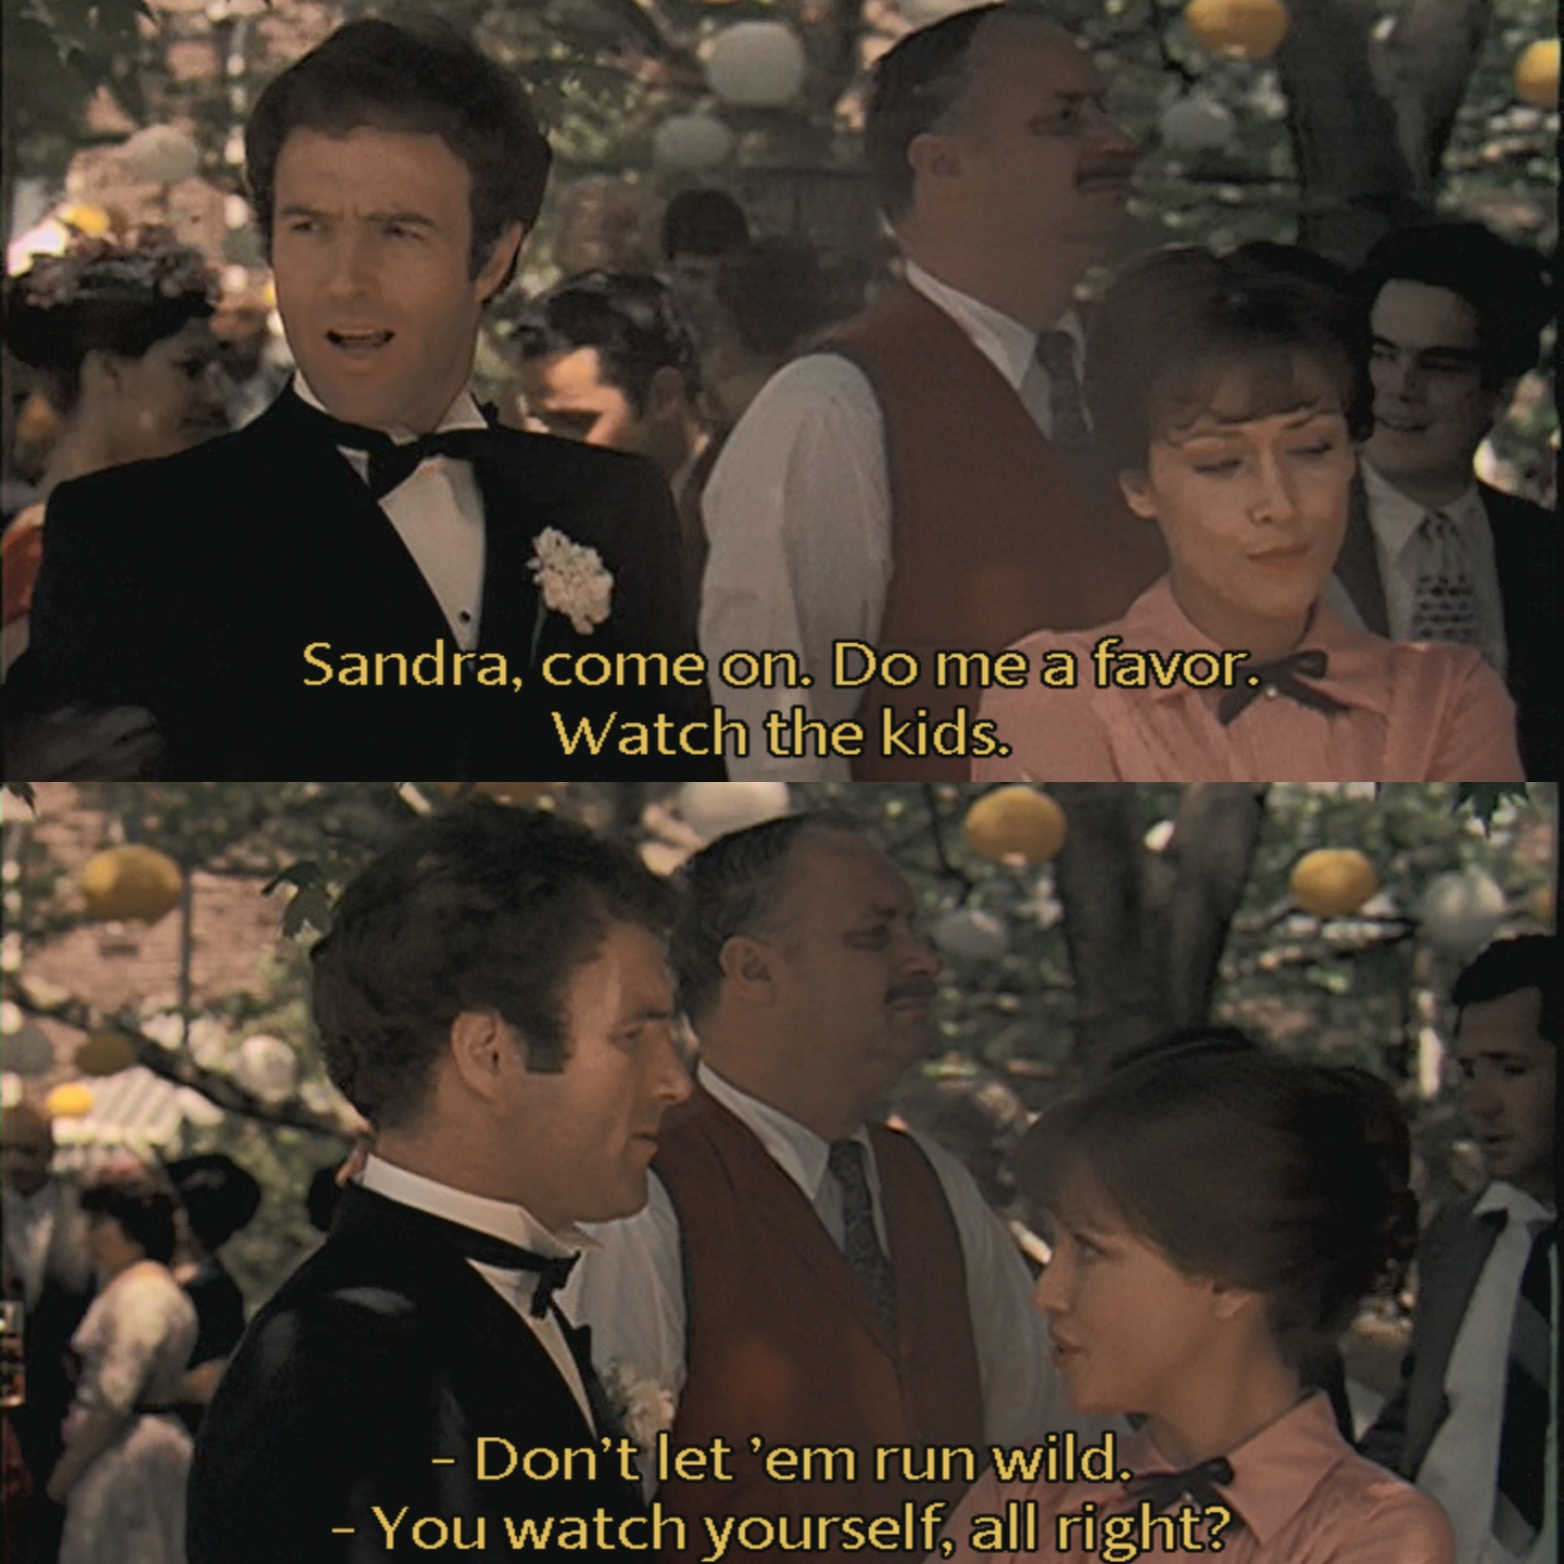 Minute 10: The Godfather-Wedding Snapshots - Amanda and Stephen experience more wedding snapshots in Minute 10. There's dancing, sandwiches and one very annoyed wife.